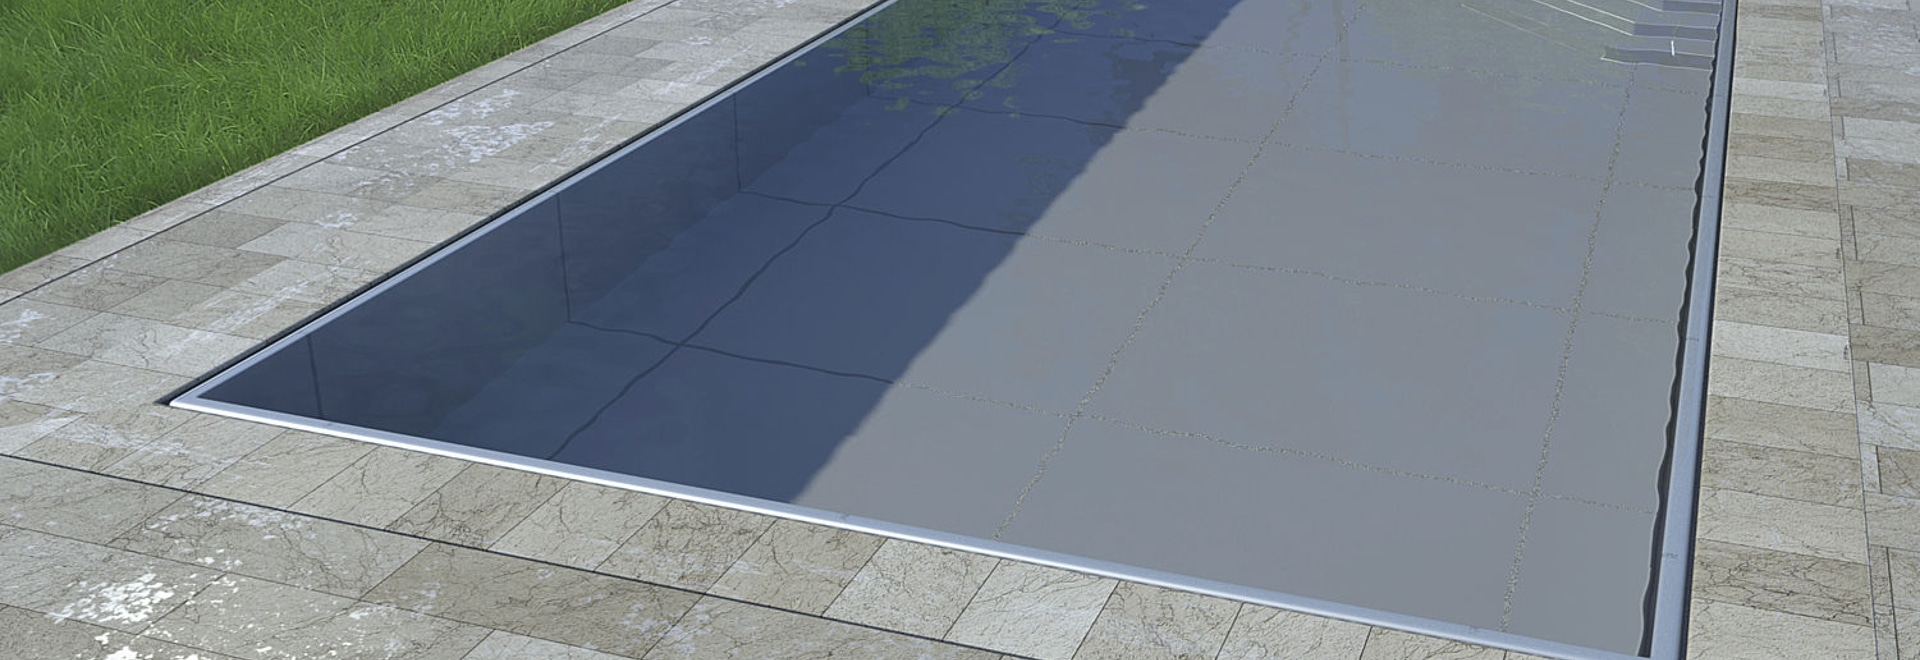 MARINE Inox - overflow panel pool from stainless steel - LUXE Pools